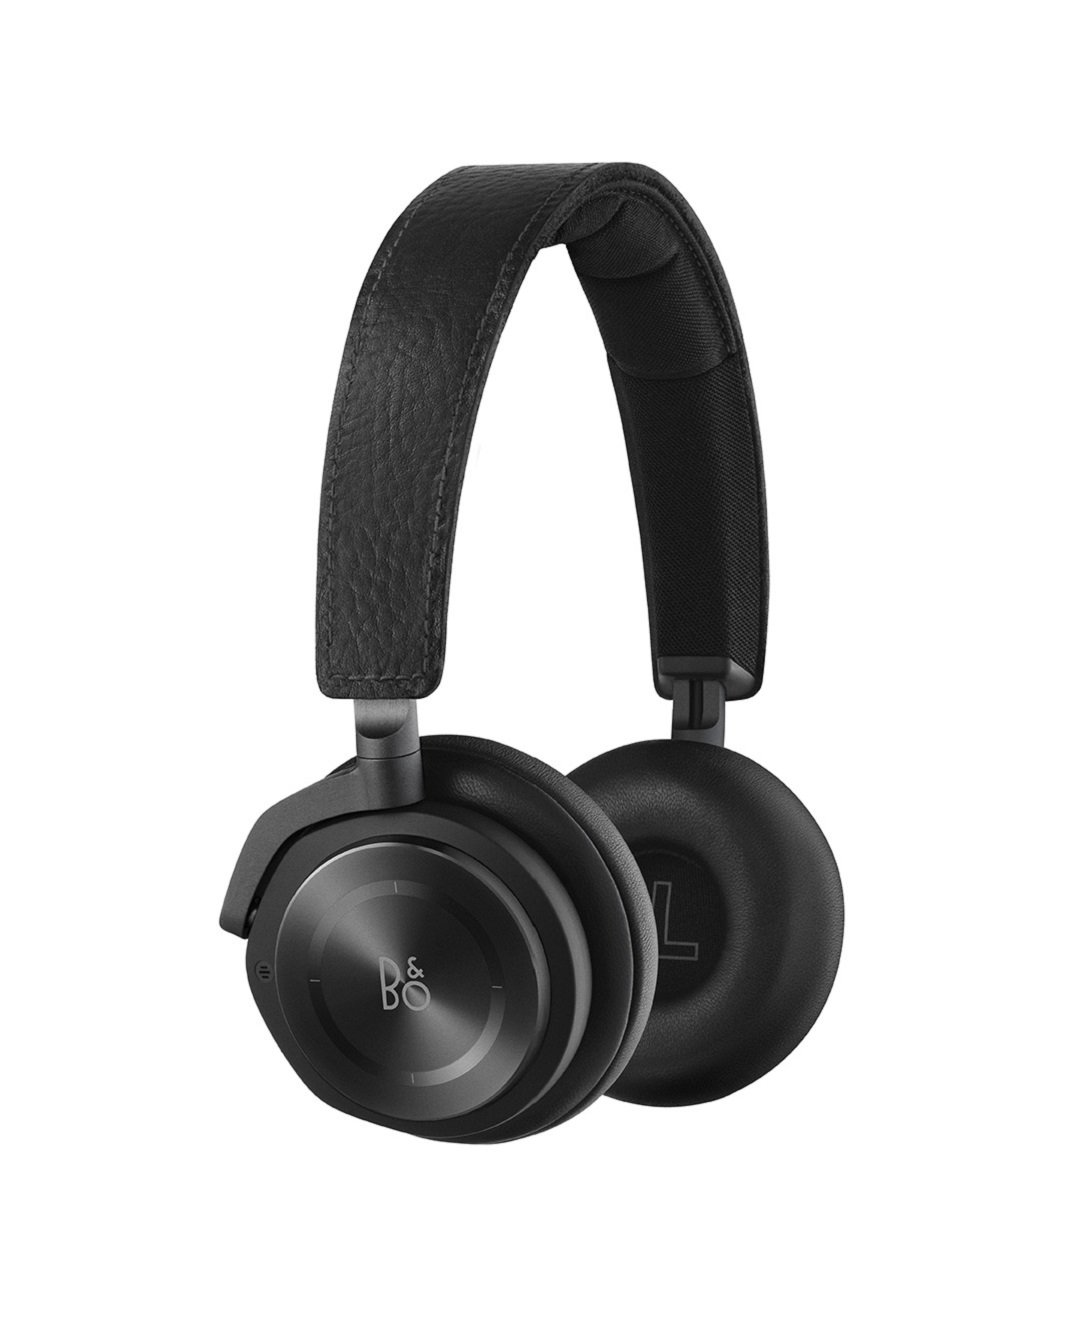 Bang Olufsen Beoplay H8 Wireless On-Ear Headphone with Active Noise Cancelling – Black